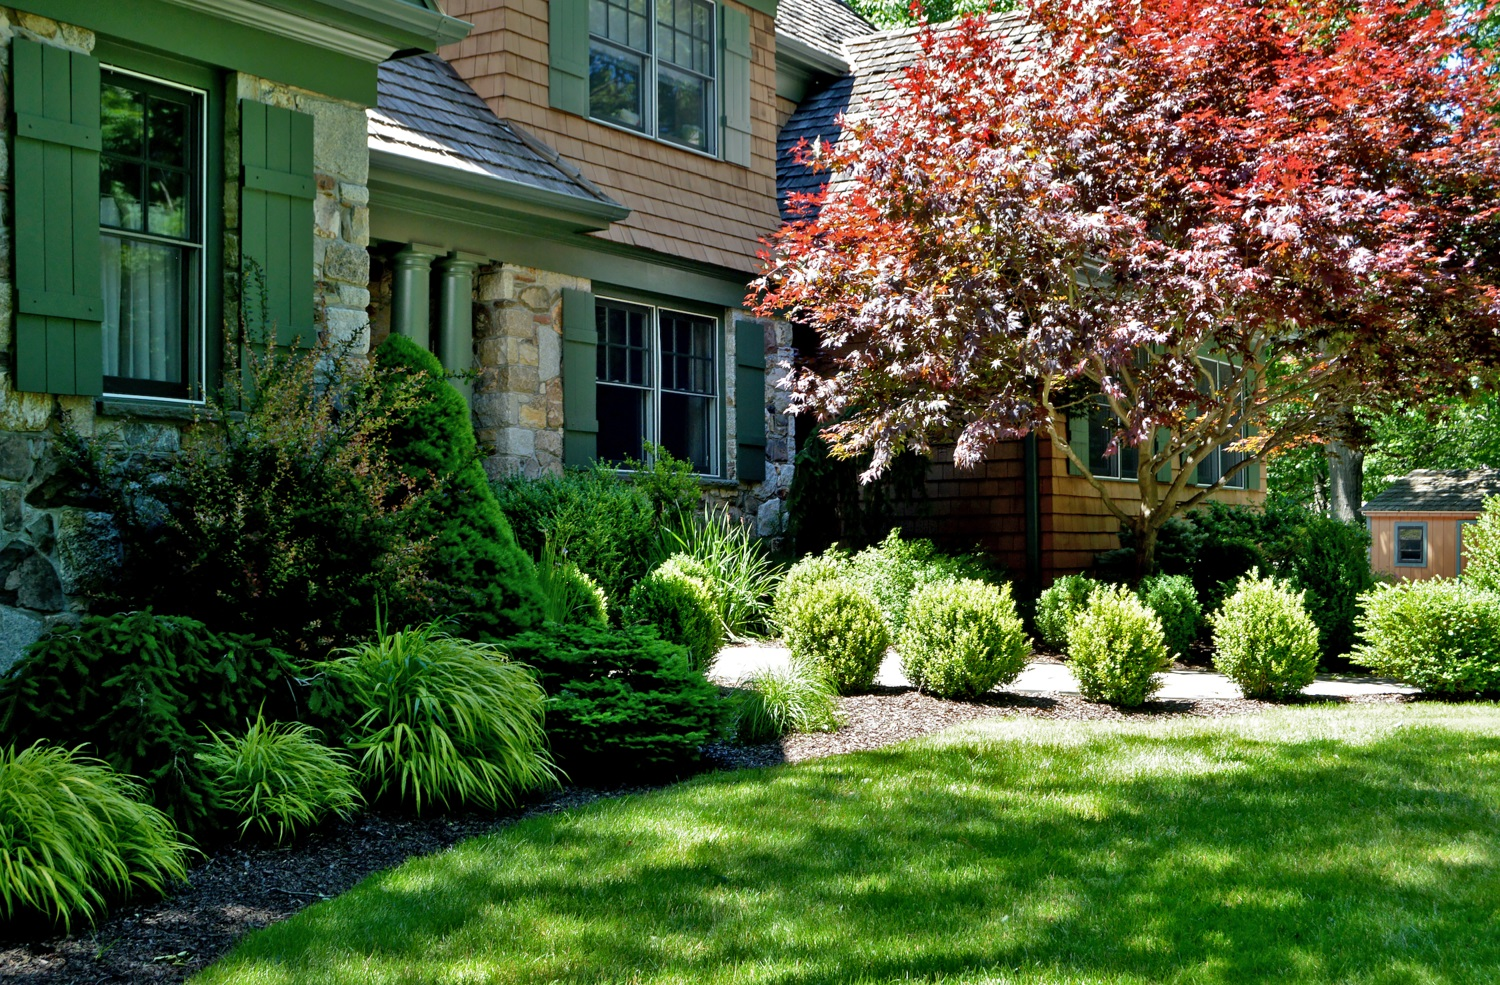 Residential and commercial property maintenance in Somers NY